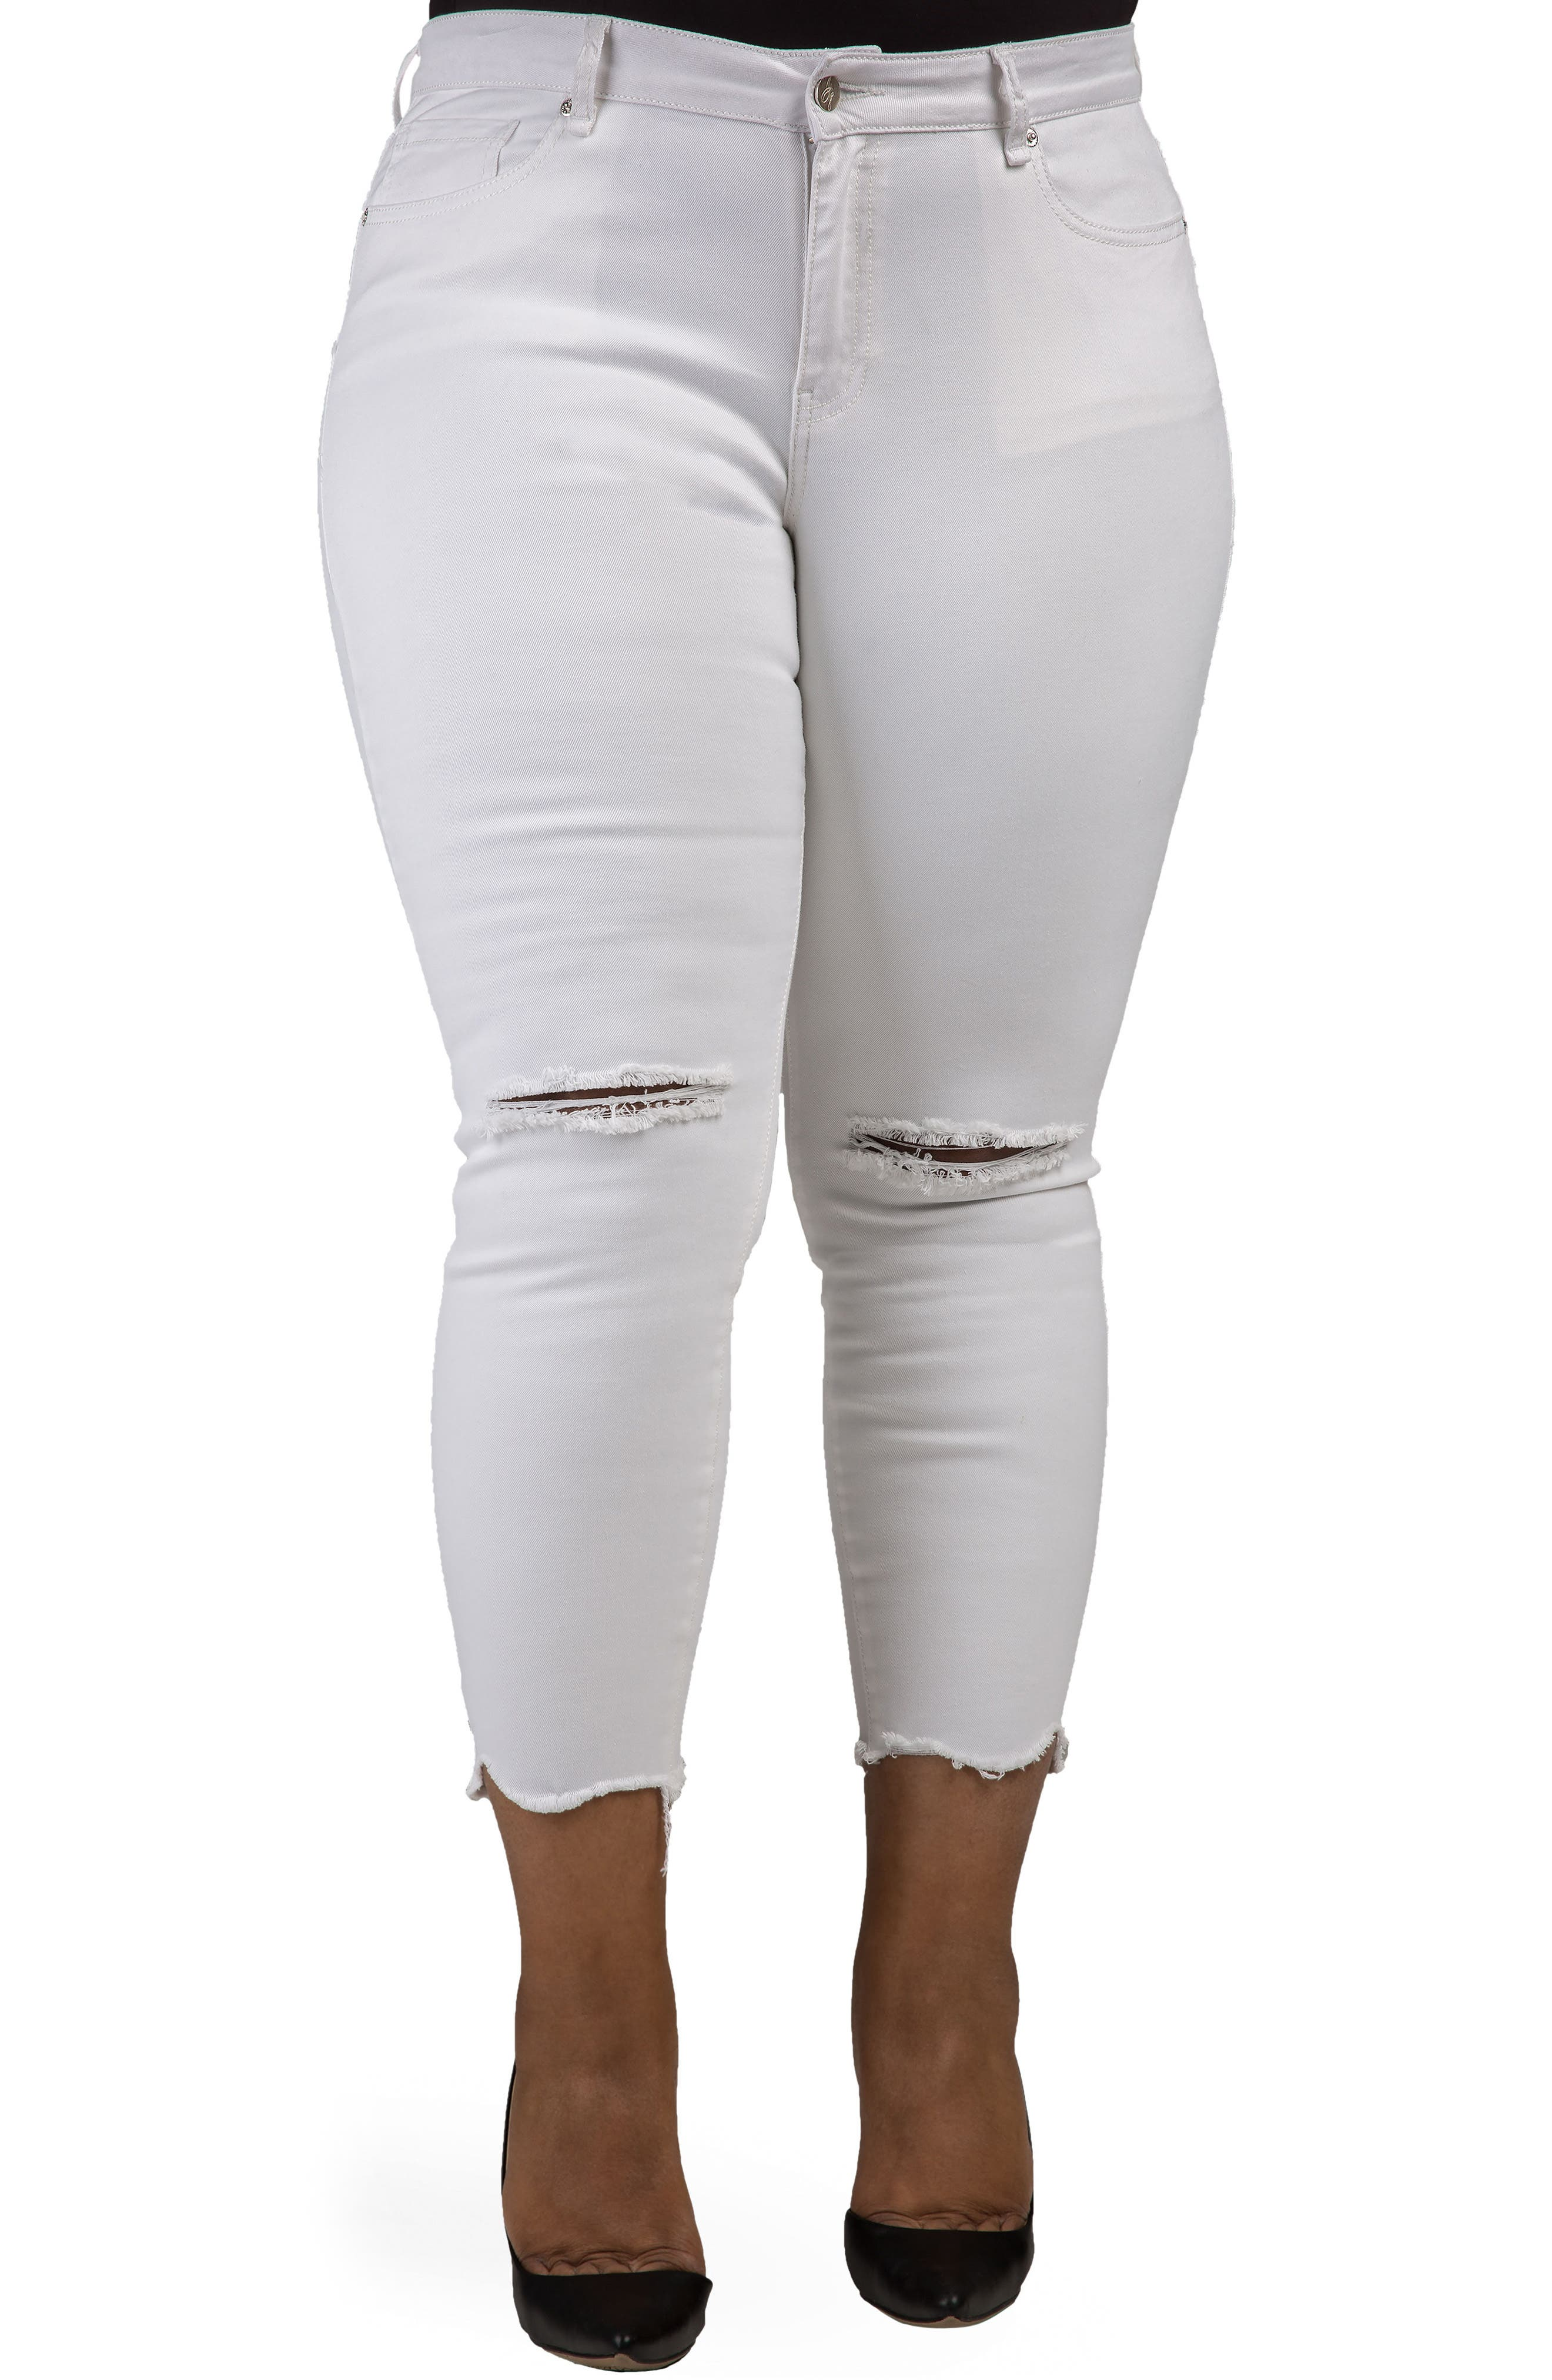 Poetic Justice Ripped Jagged Hem Ankle Jeans (Shark Bite) (Plus Size)